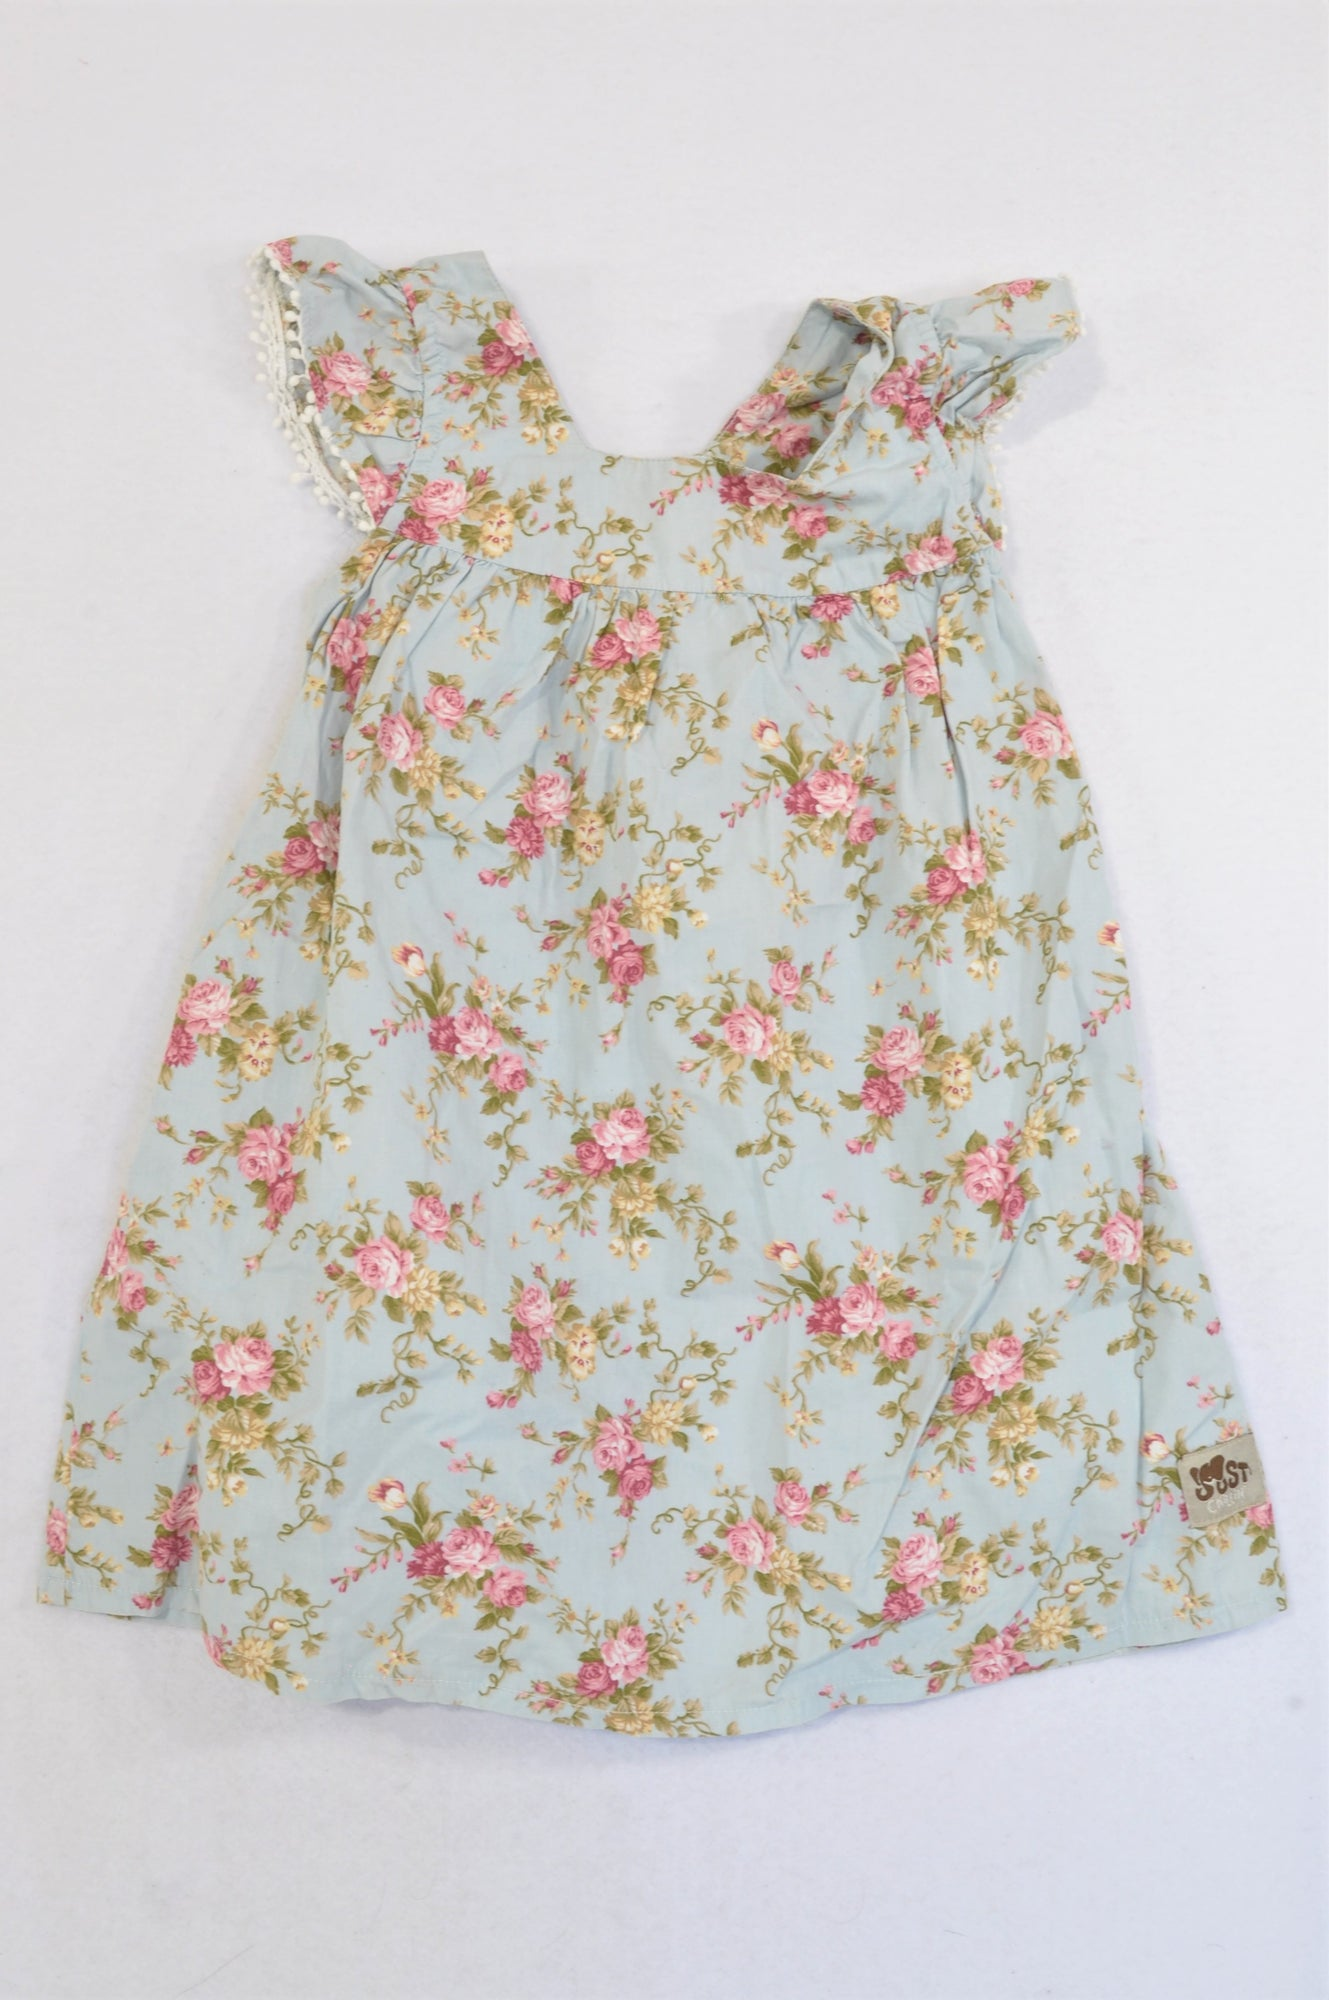 Just Chillin' Dusty Pink Bauble Trim Floral Dress Girls 2-3 years